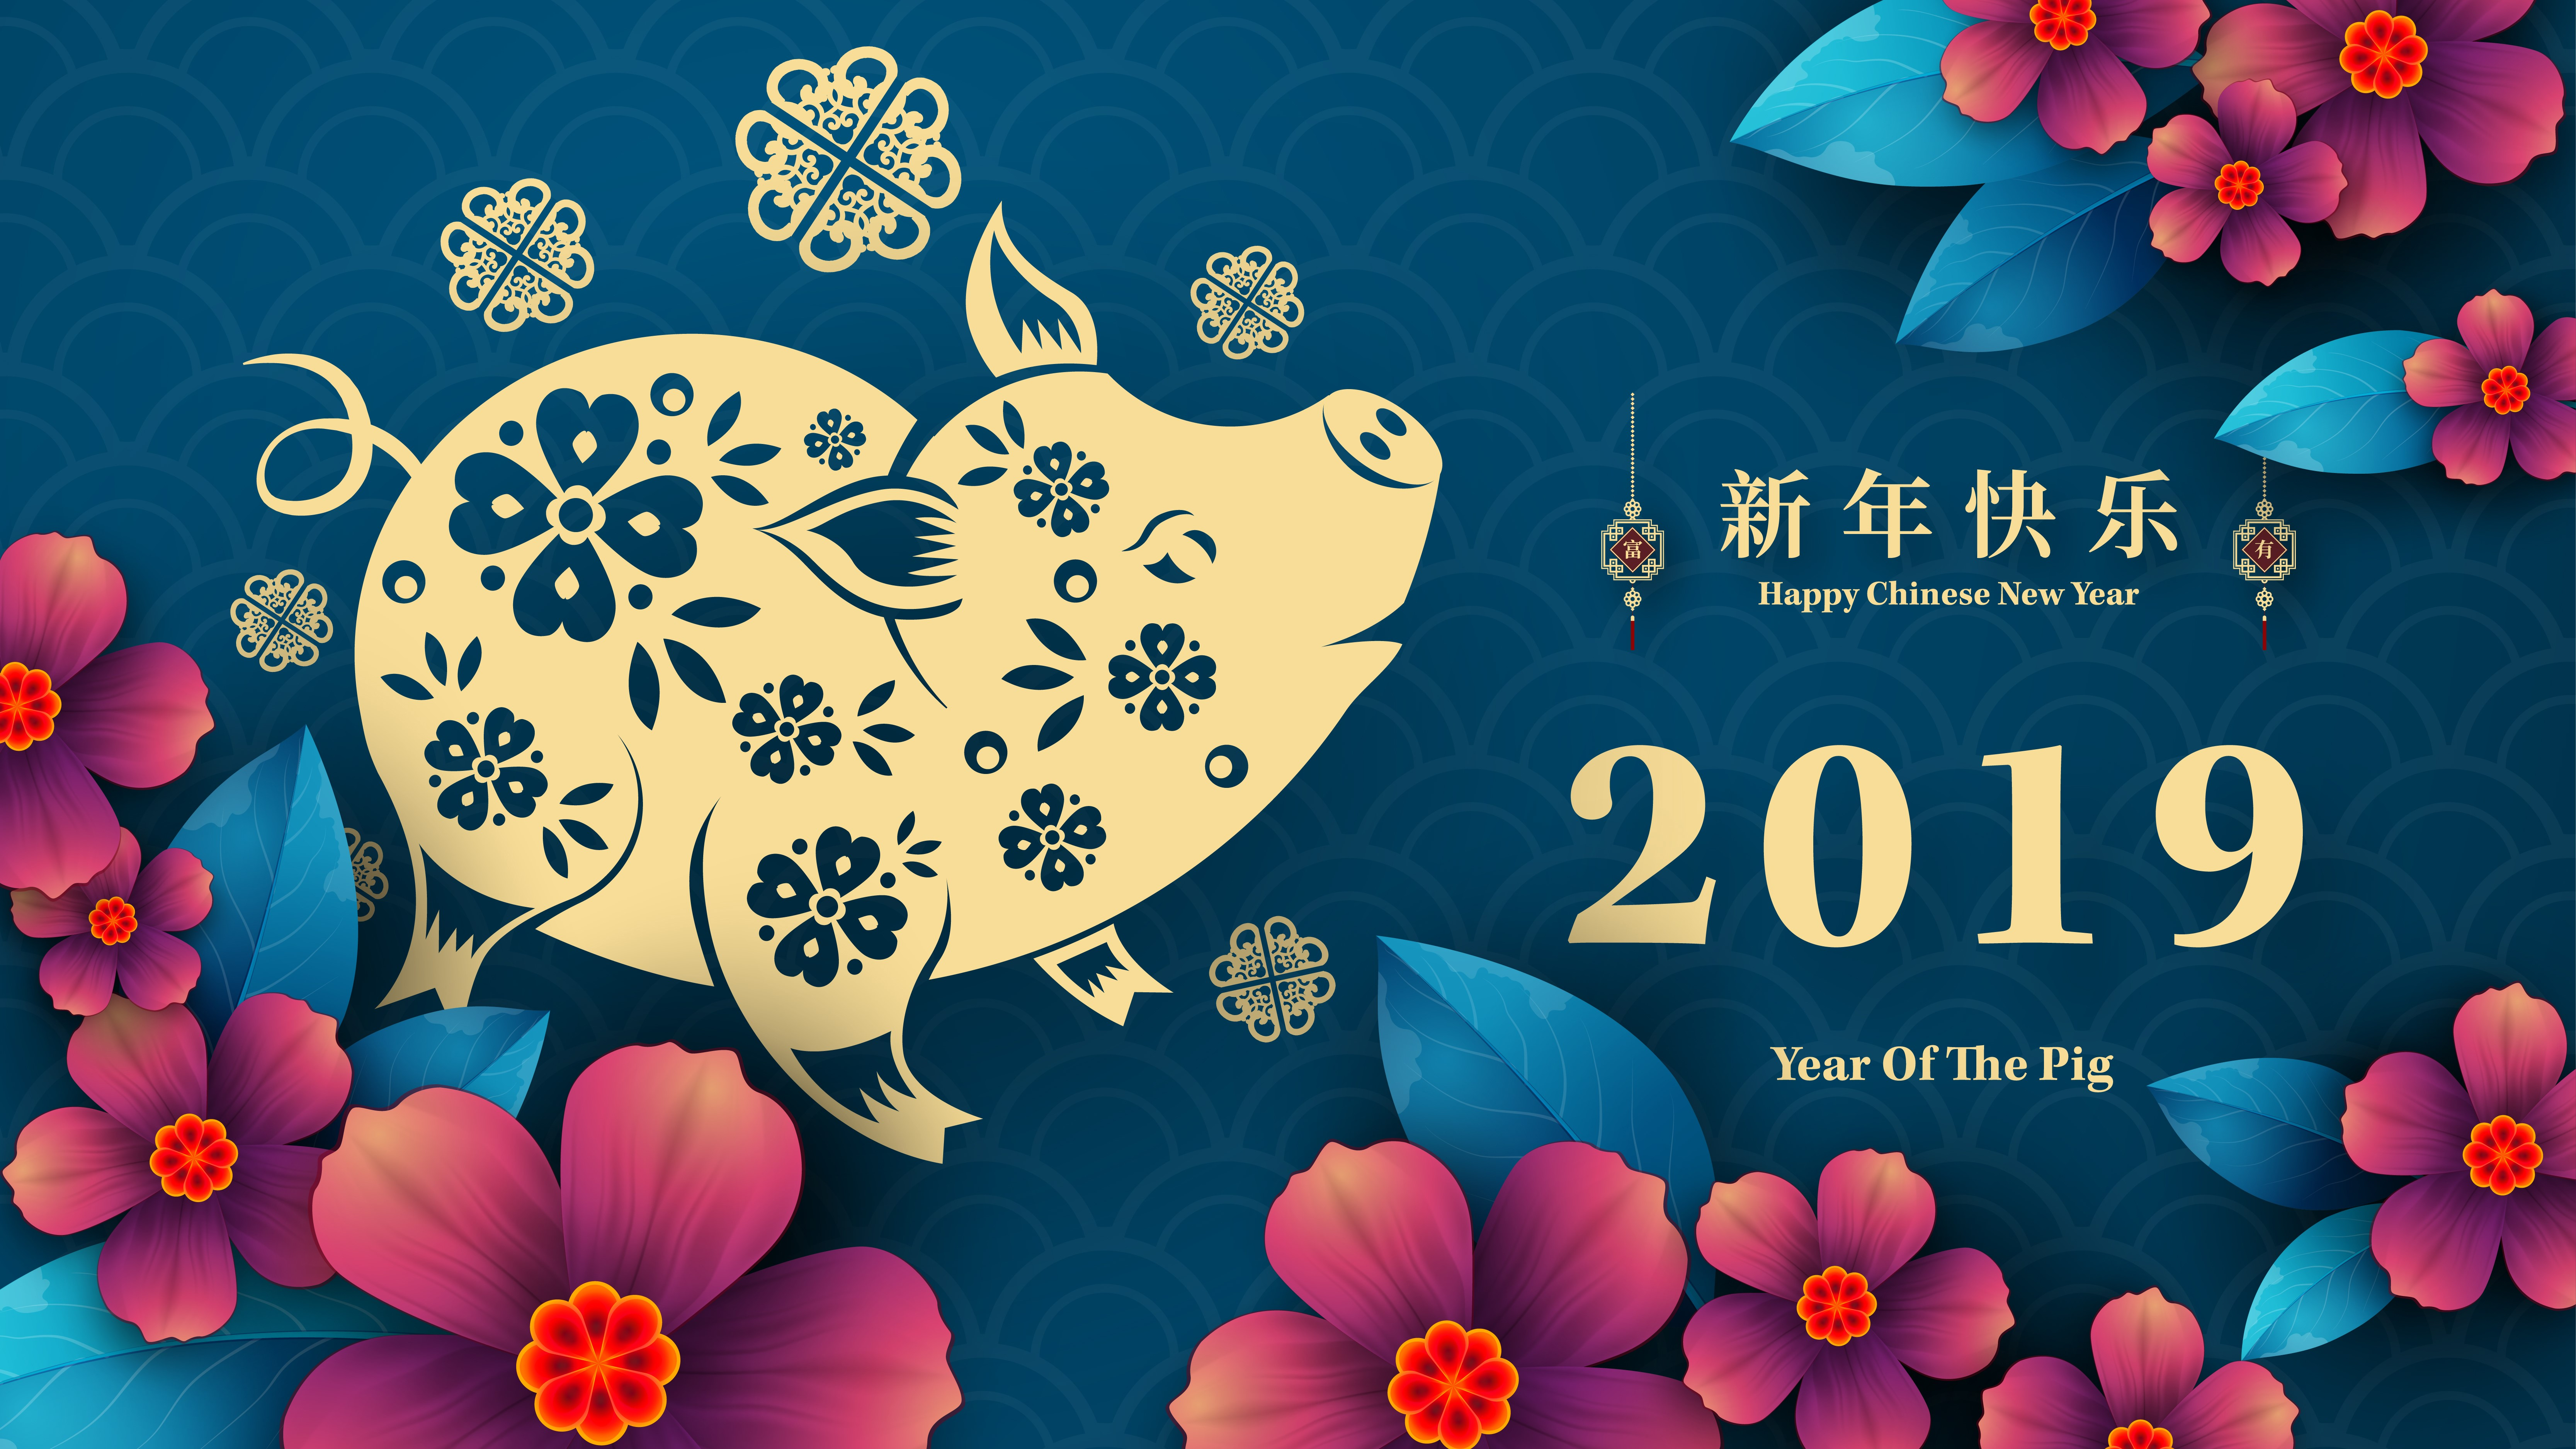 The Atlas Logistic Network is wishing all our Asian members a happy Lunar Festival 1